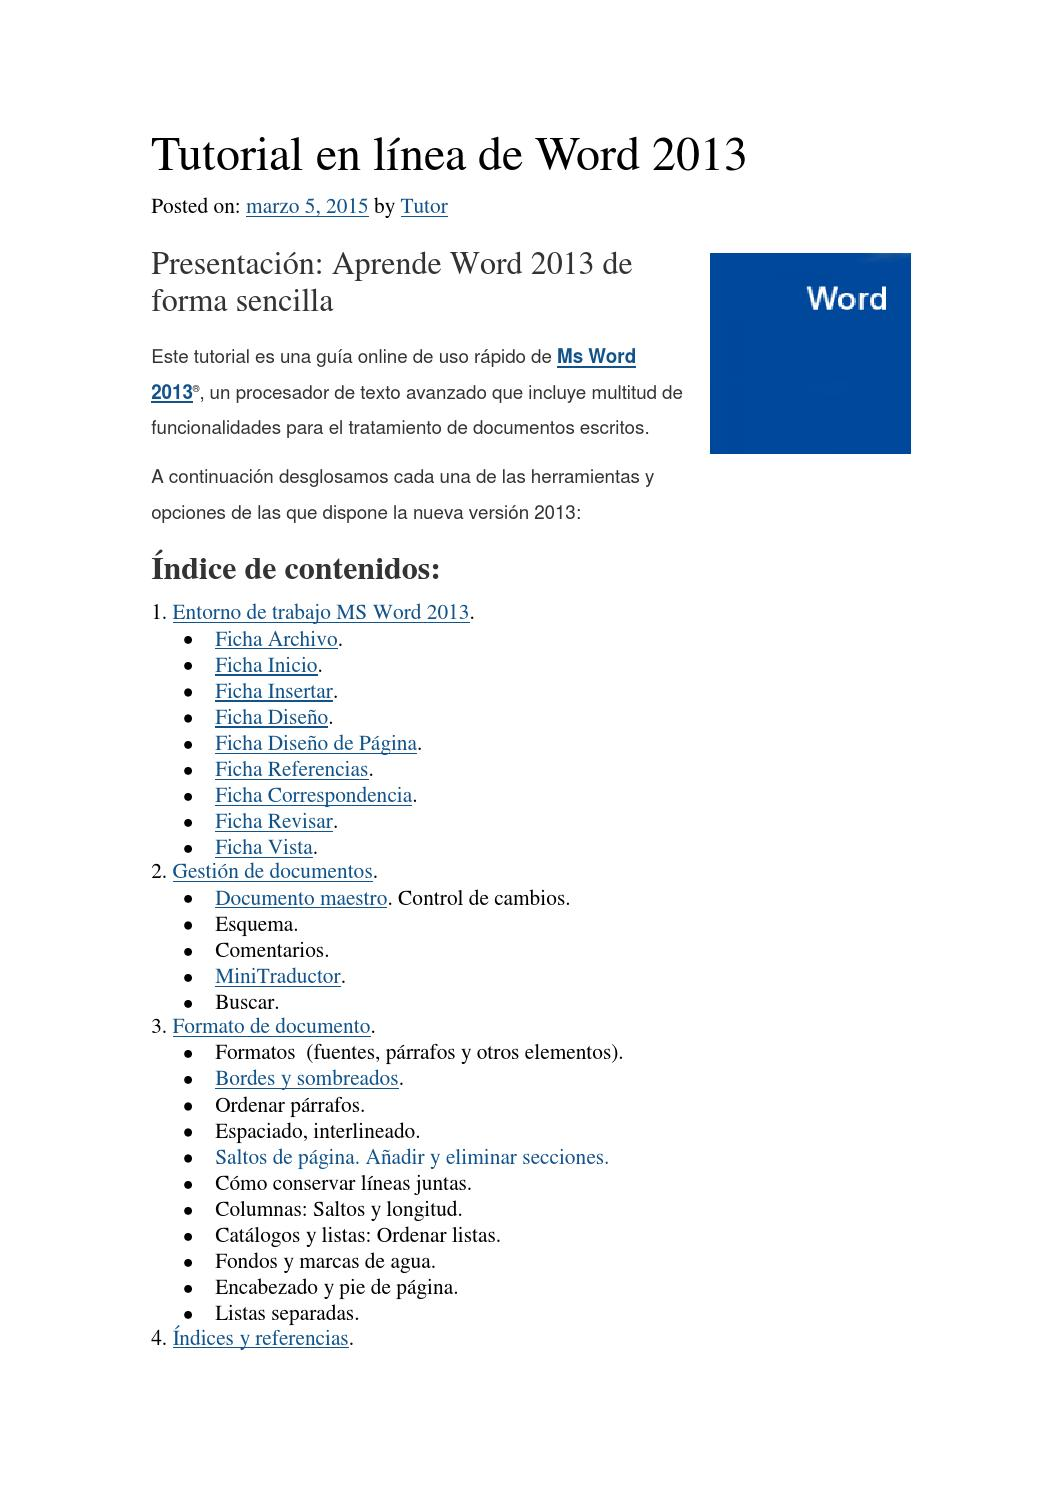 Tutorial word 2013 by ALFREDO QUISPE CHATE - issuu